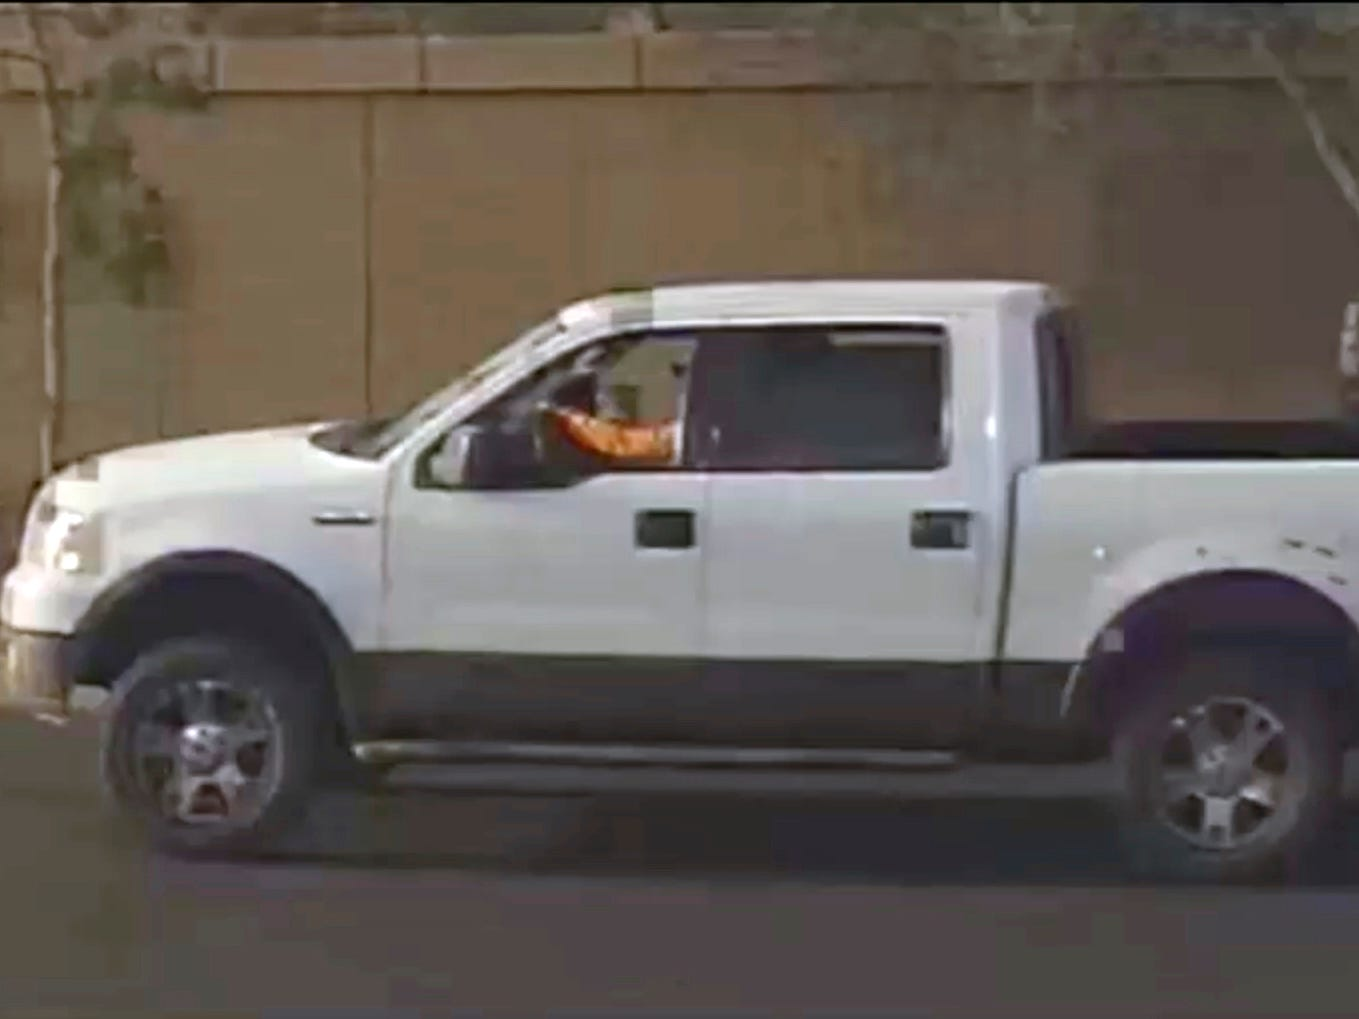 This photo, provided by the Phoenix Police Department, shows a security video photo of what is believed to be the shooter's vehicle in a possible road-rage incident in Phoenix, where a 10-year-old girl was fatally shot. Sgt. Vince Lewis said the shooting that killed Summer Bell Brown occurred April 3, 2019, when a man in a pickup truck that had been following a family's car fired several gunshots after the family pulled into their driveway.